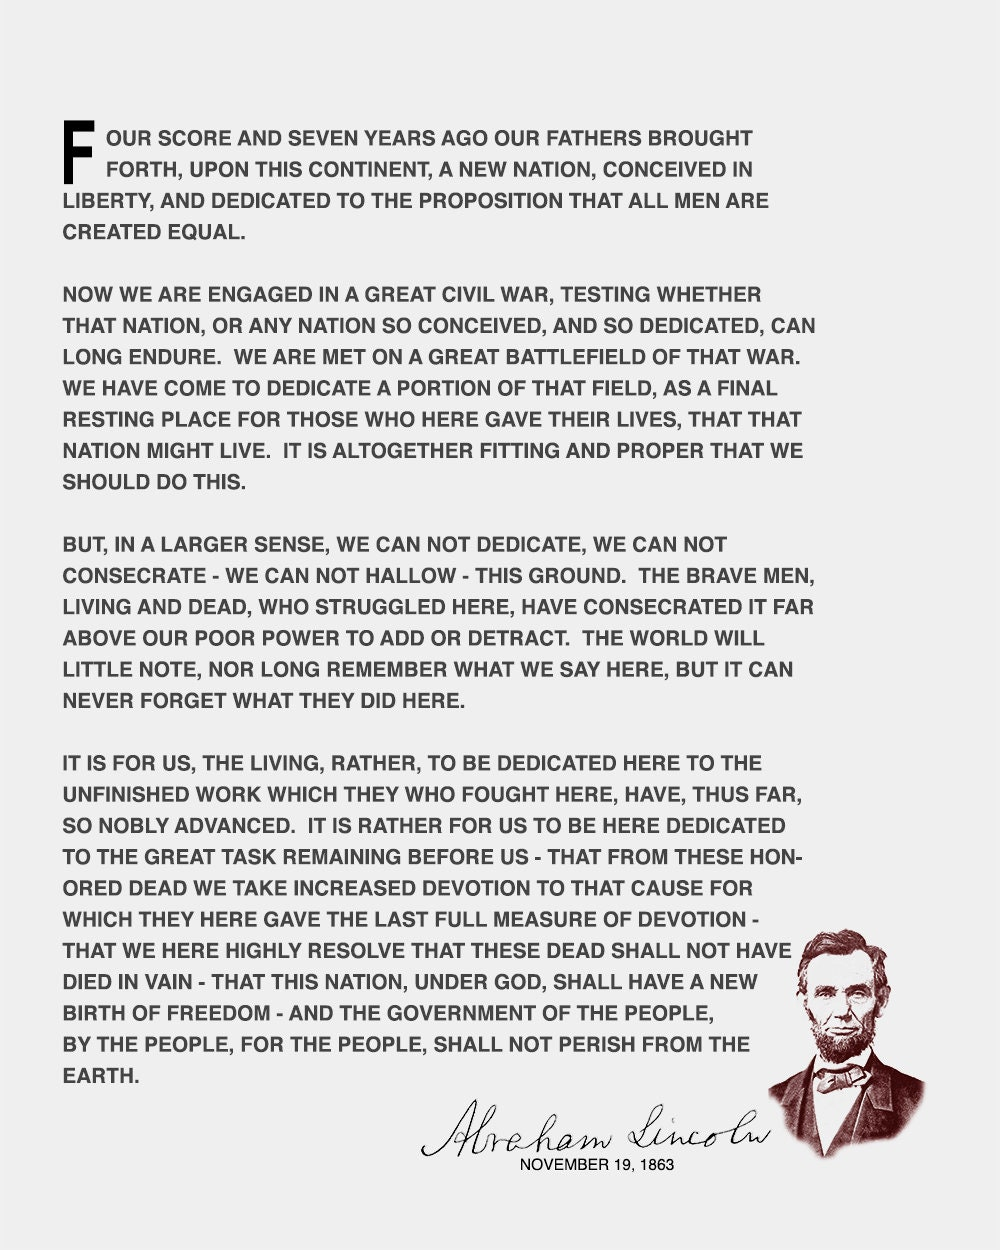 photo about Gettysburg Address Printable titled The Gettysburg Protect Wall Artwork Print - Abraham Lincoln